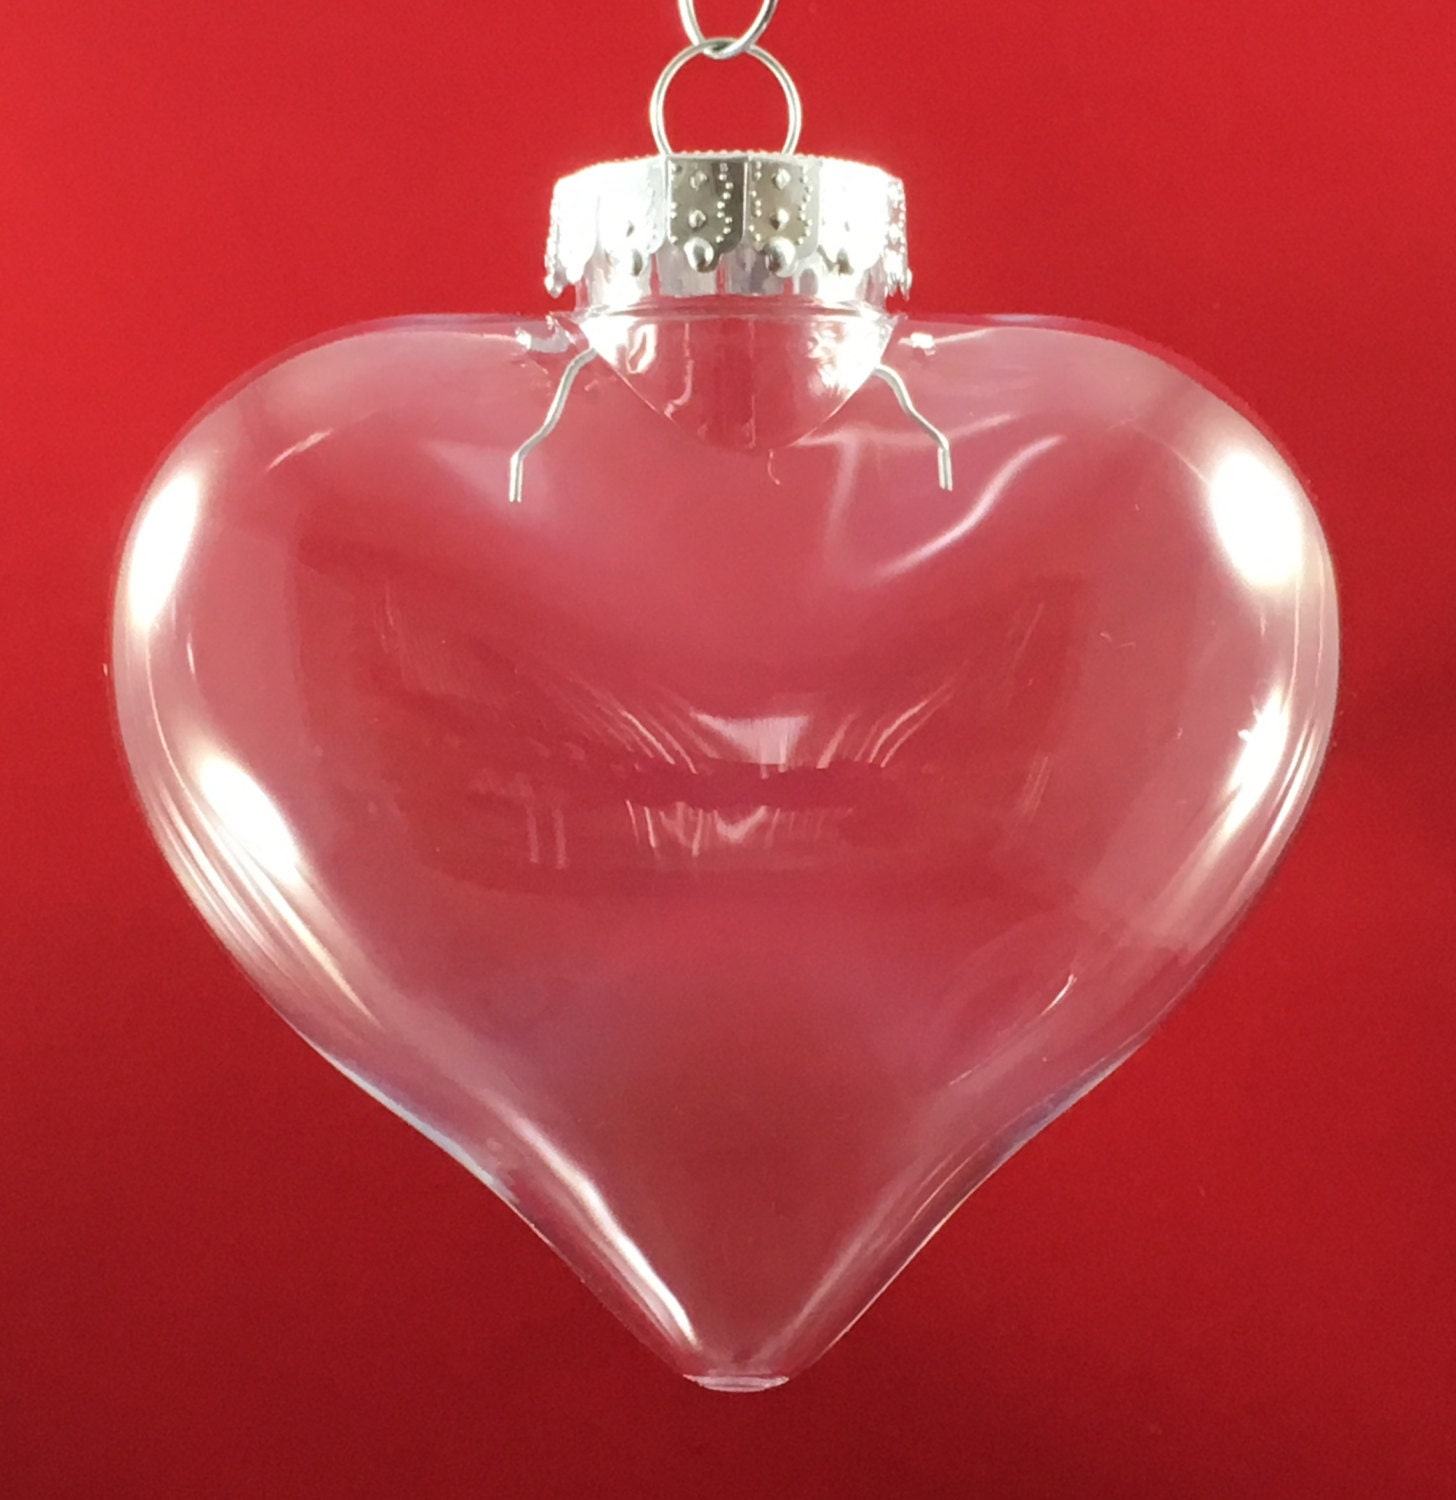 Pack of 10 100mm Clear Plastic Heart Shaped Christmas